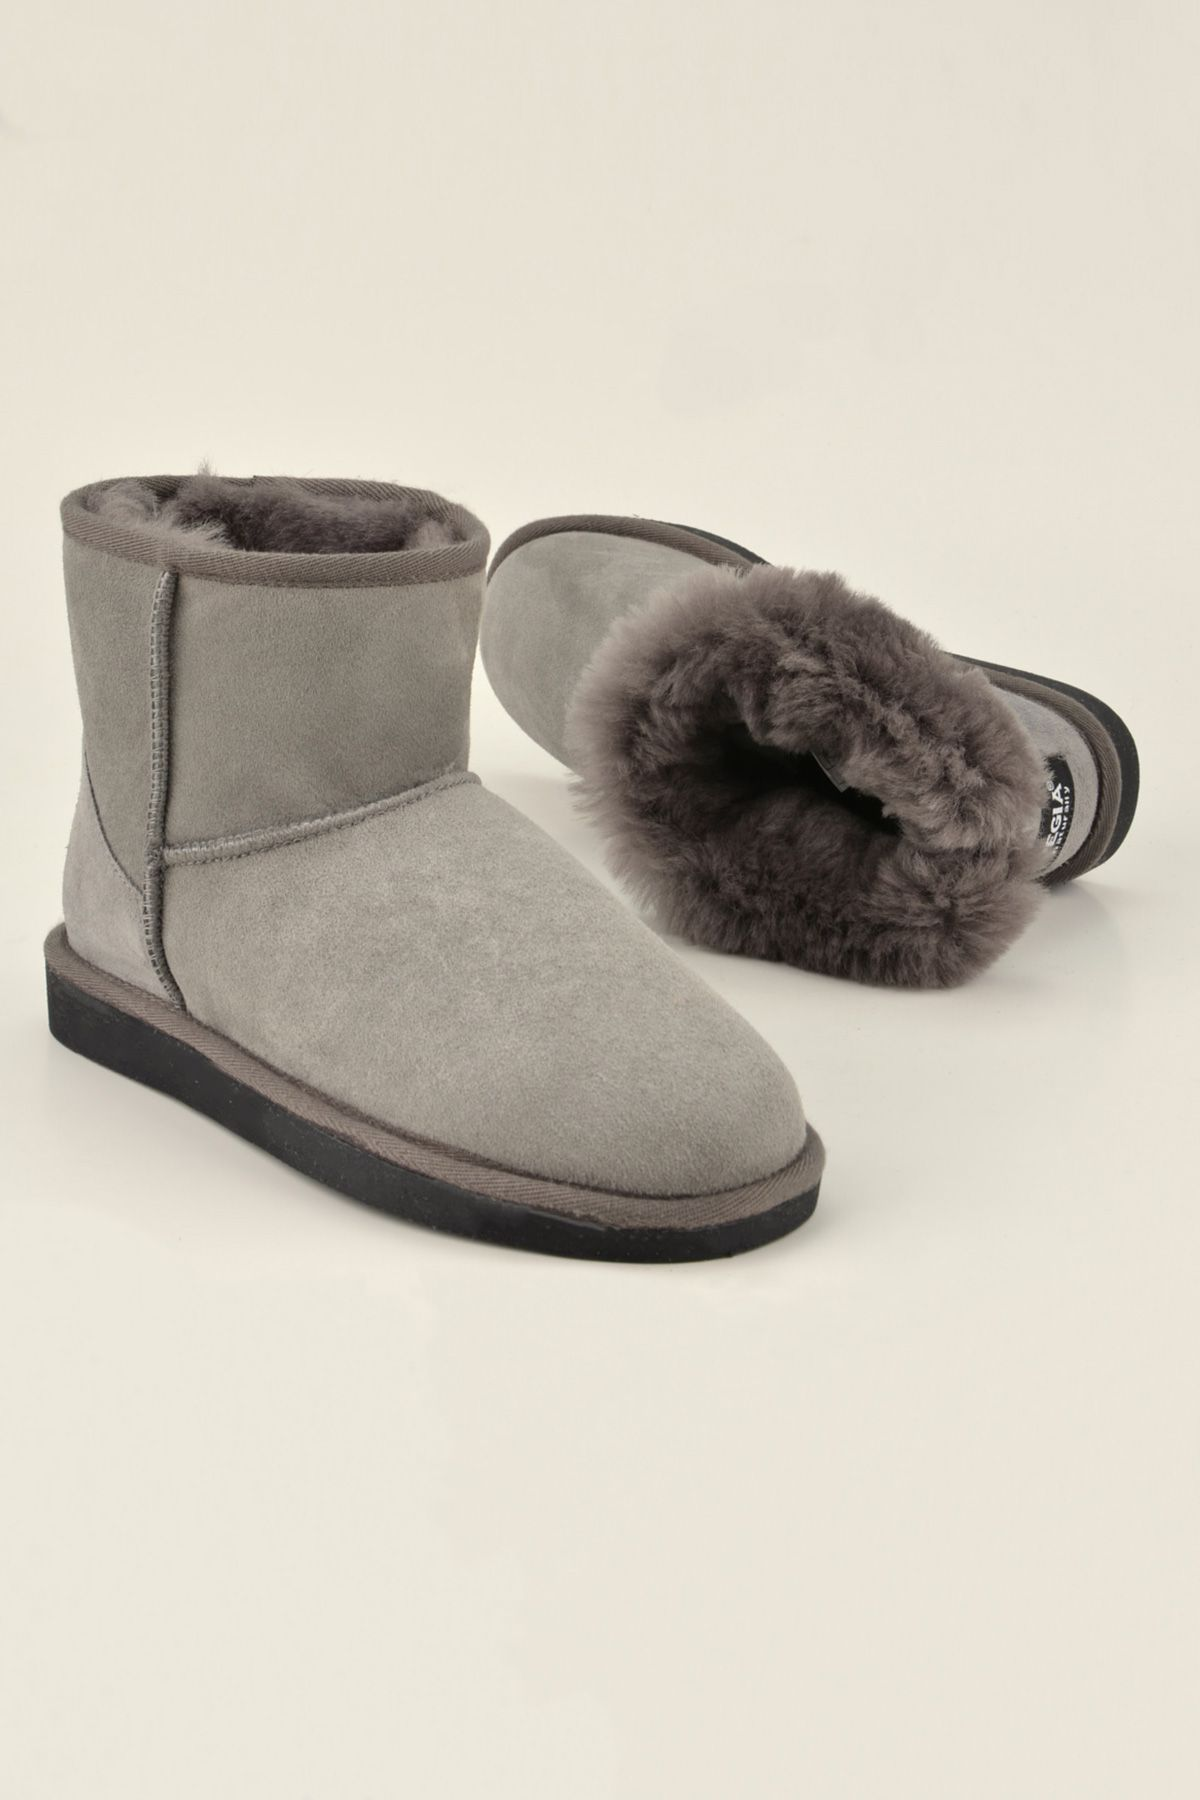 Pegia Short Women Boots From Genuine Suede And Sheepskin Fur 191021 Gray